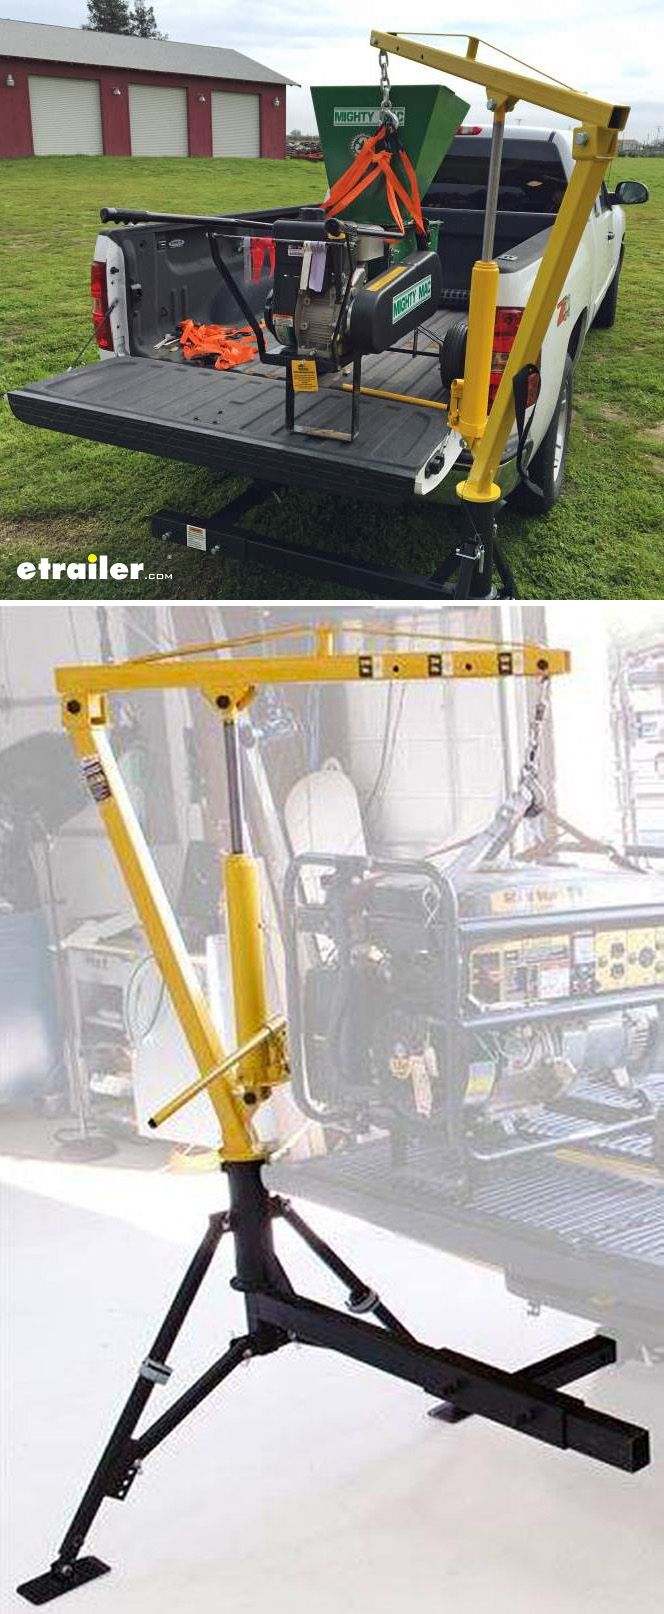 Easily load and unload cargo and equipment into and out of your pickup truck bed with this heavy-duty, hitch-mounted crane. Hydraulic ability eliminates the need for wiring and provides smooth, controlled operation.